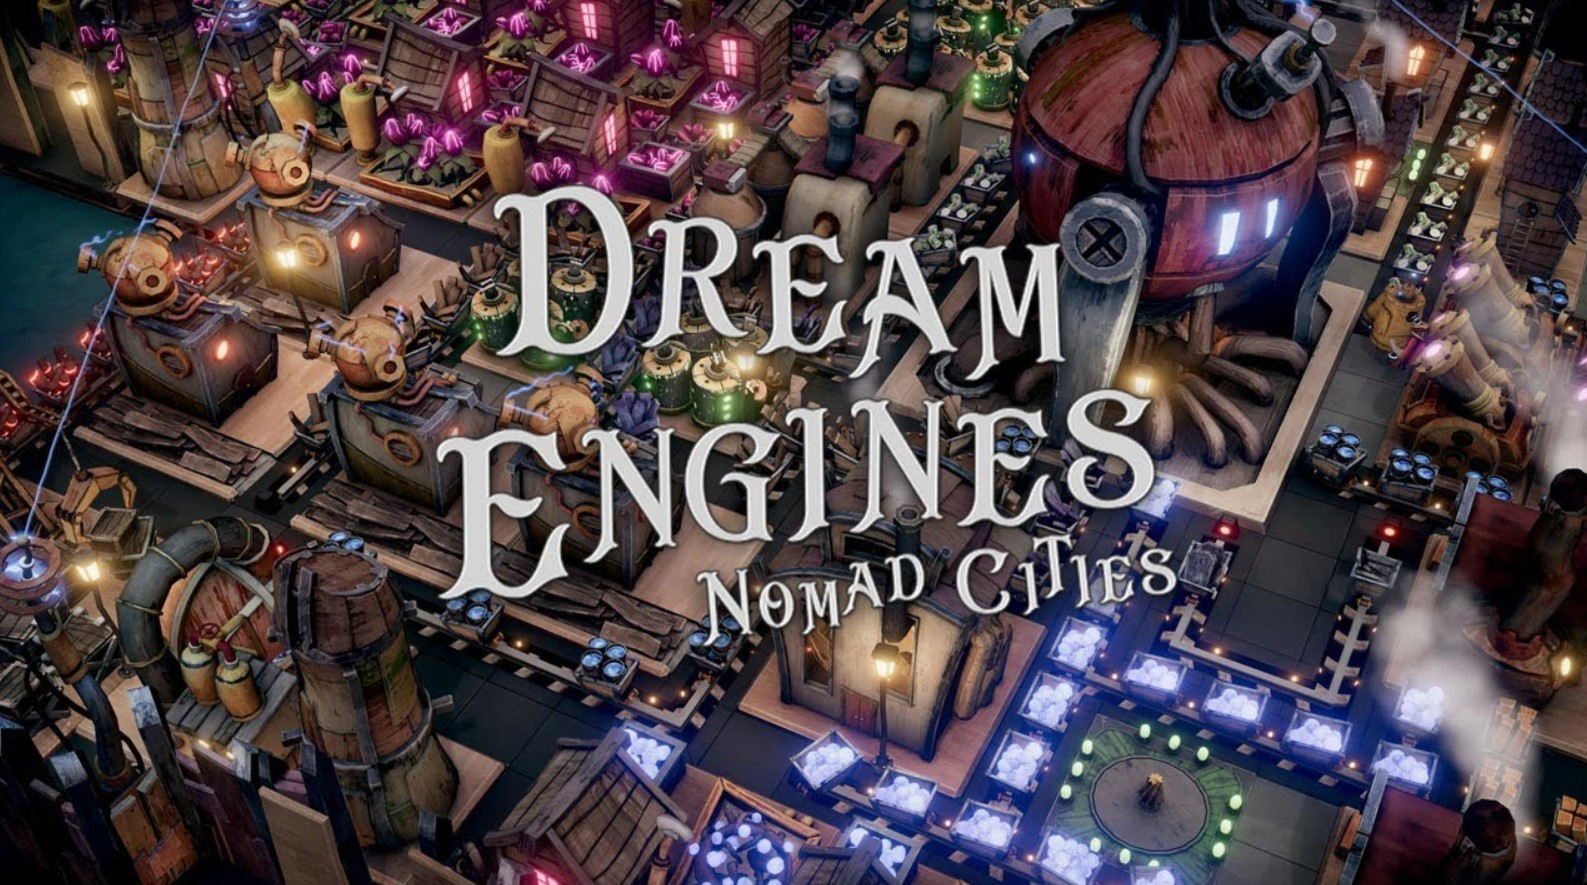 Dream Engines Nomad Cities Full Game Free Version PS4 Crack Setup Download